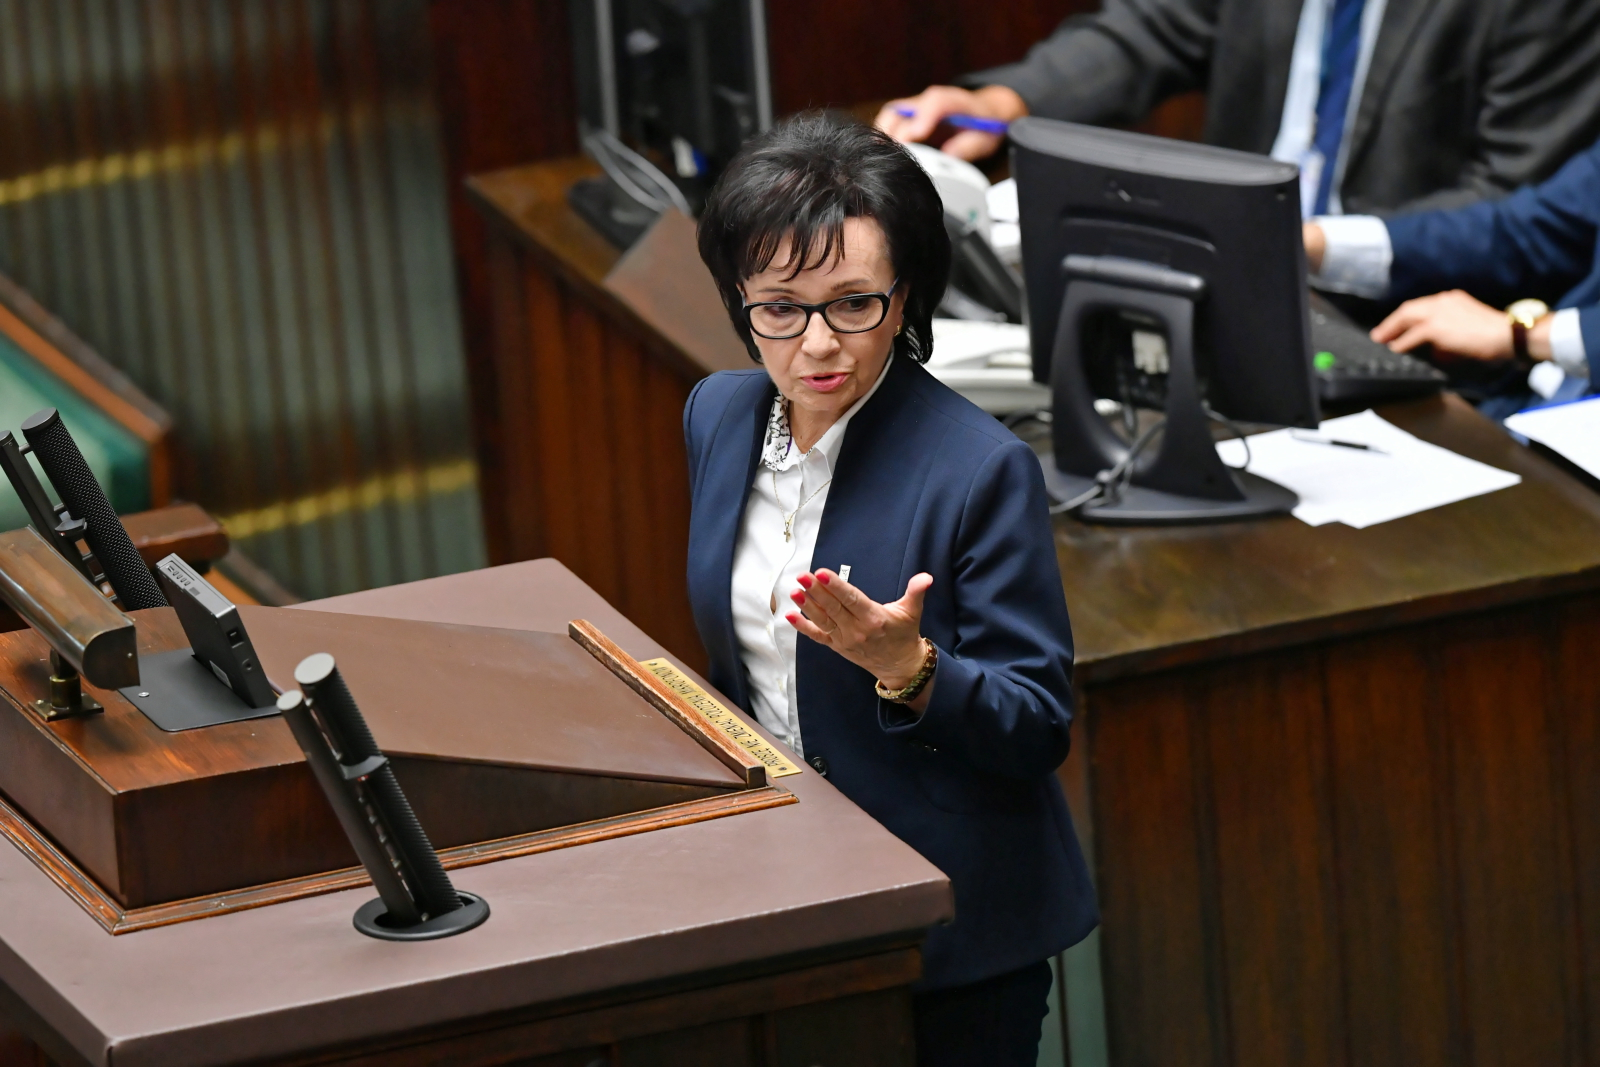 Elżbieta Witek, the new Speaker of parliament